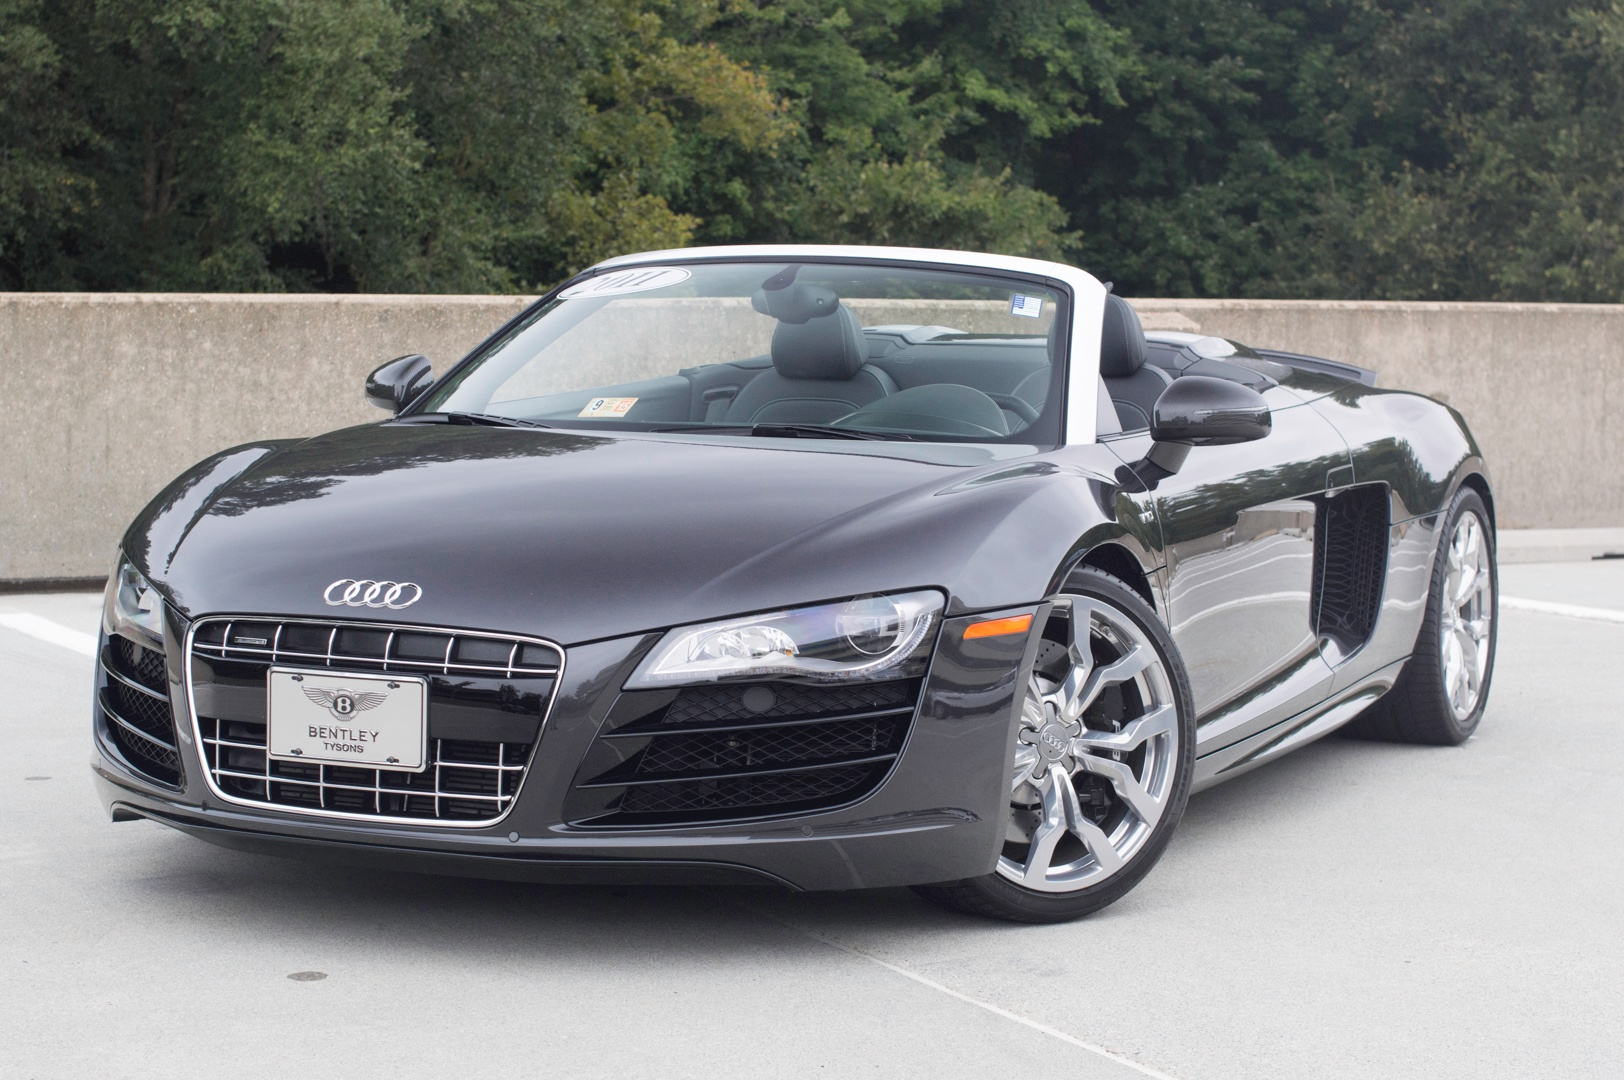 100 audi supercar convertible 2012 audi r8 gt spyder is officially launched ultracollect. Black Bedroom Furniture Sets. Home Design Ideas